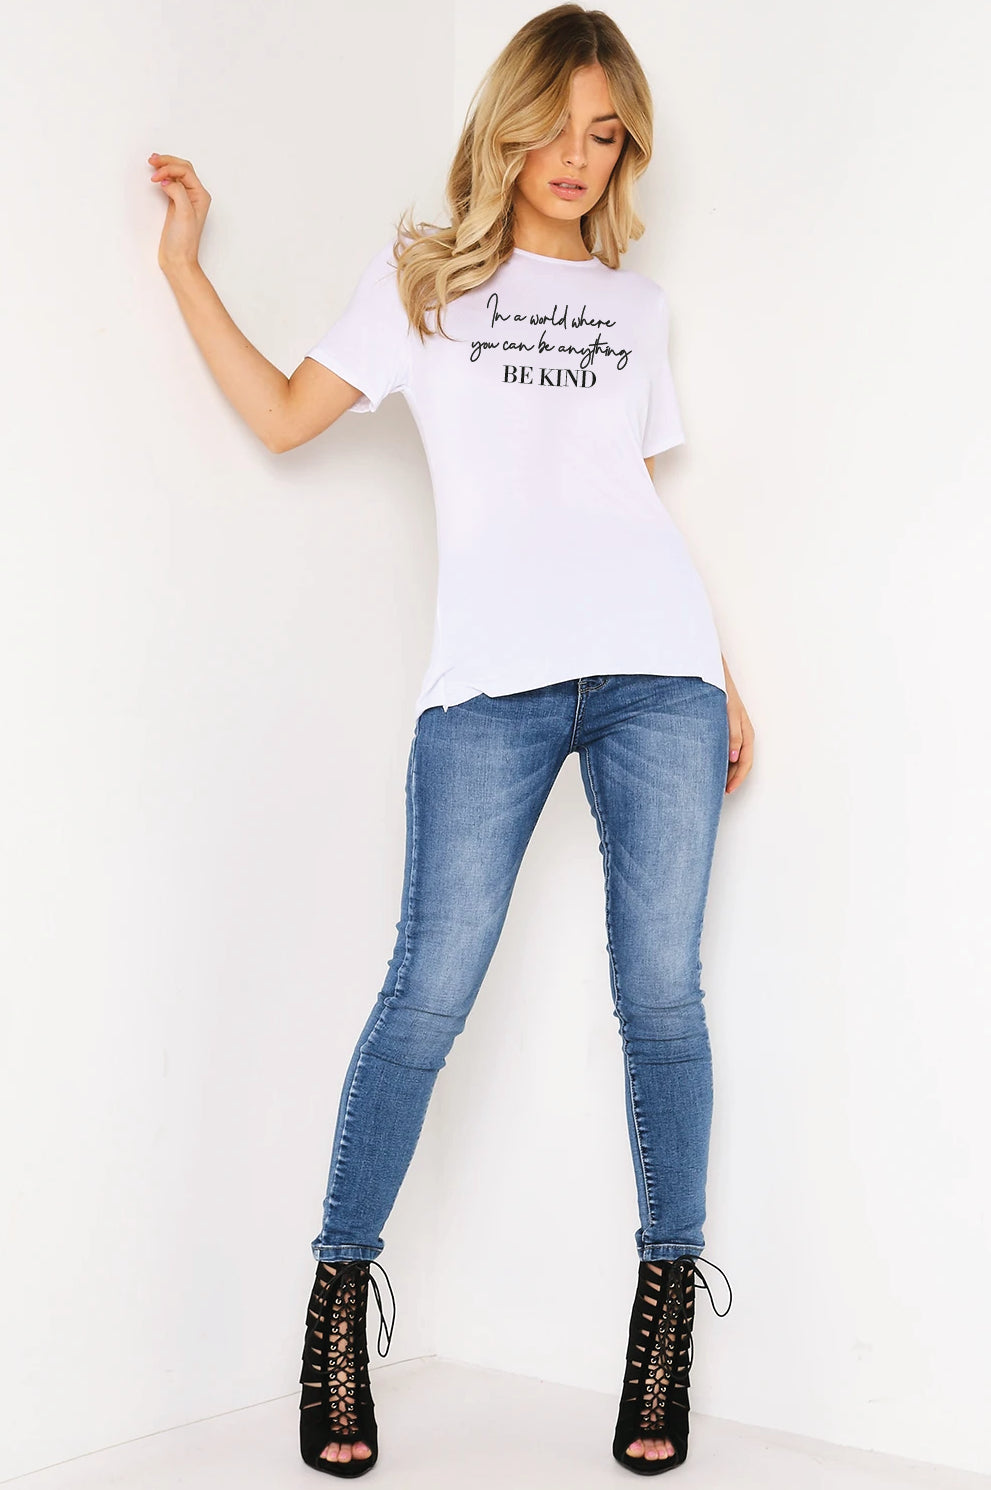 Unisex World Be Kind Slogan White T-Shirt